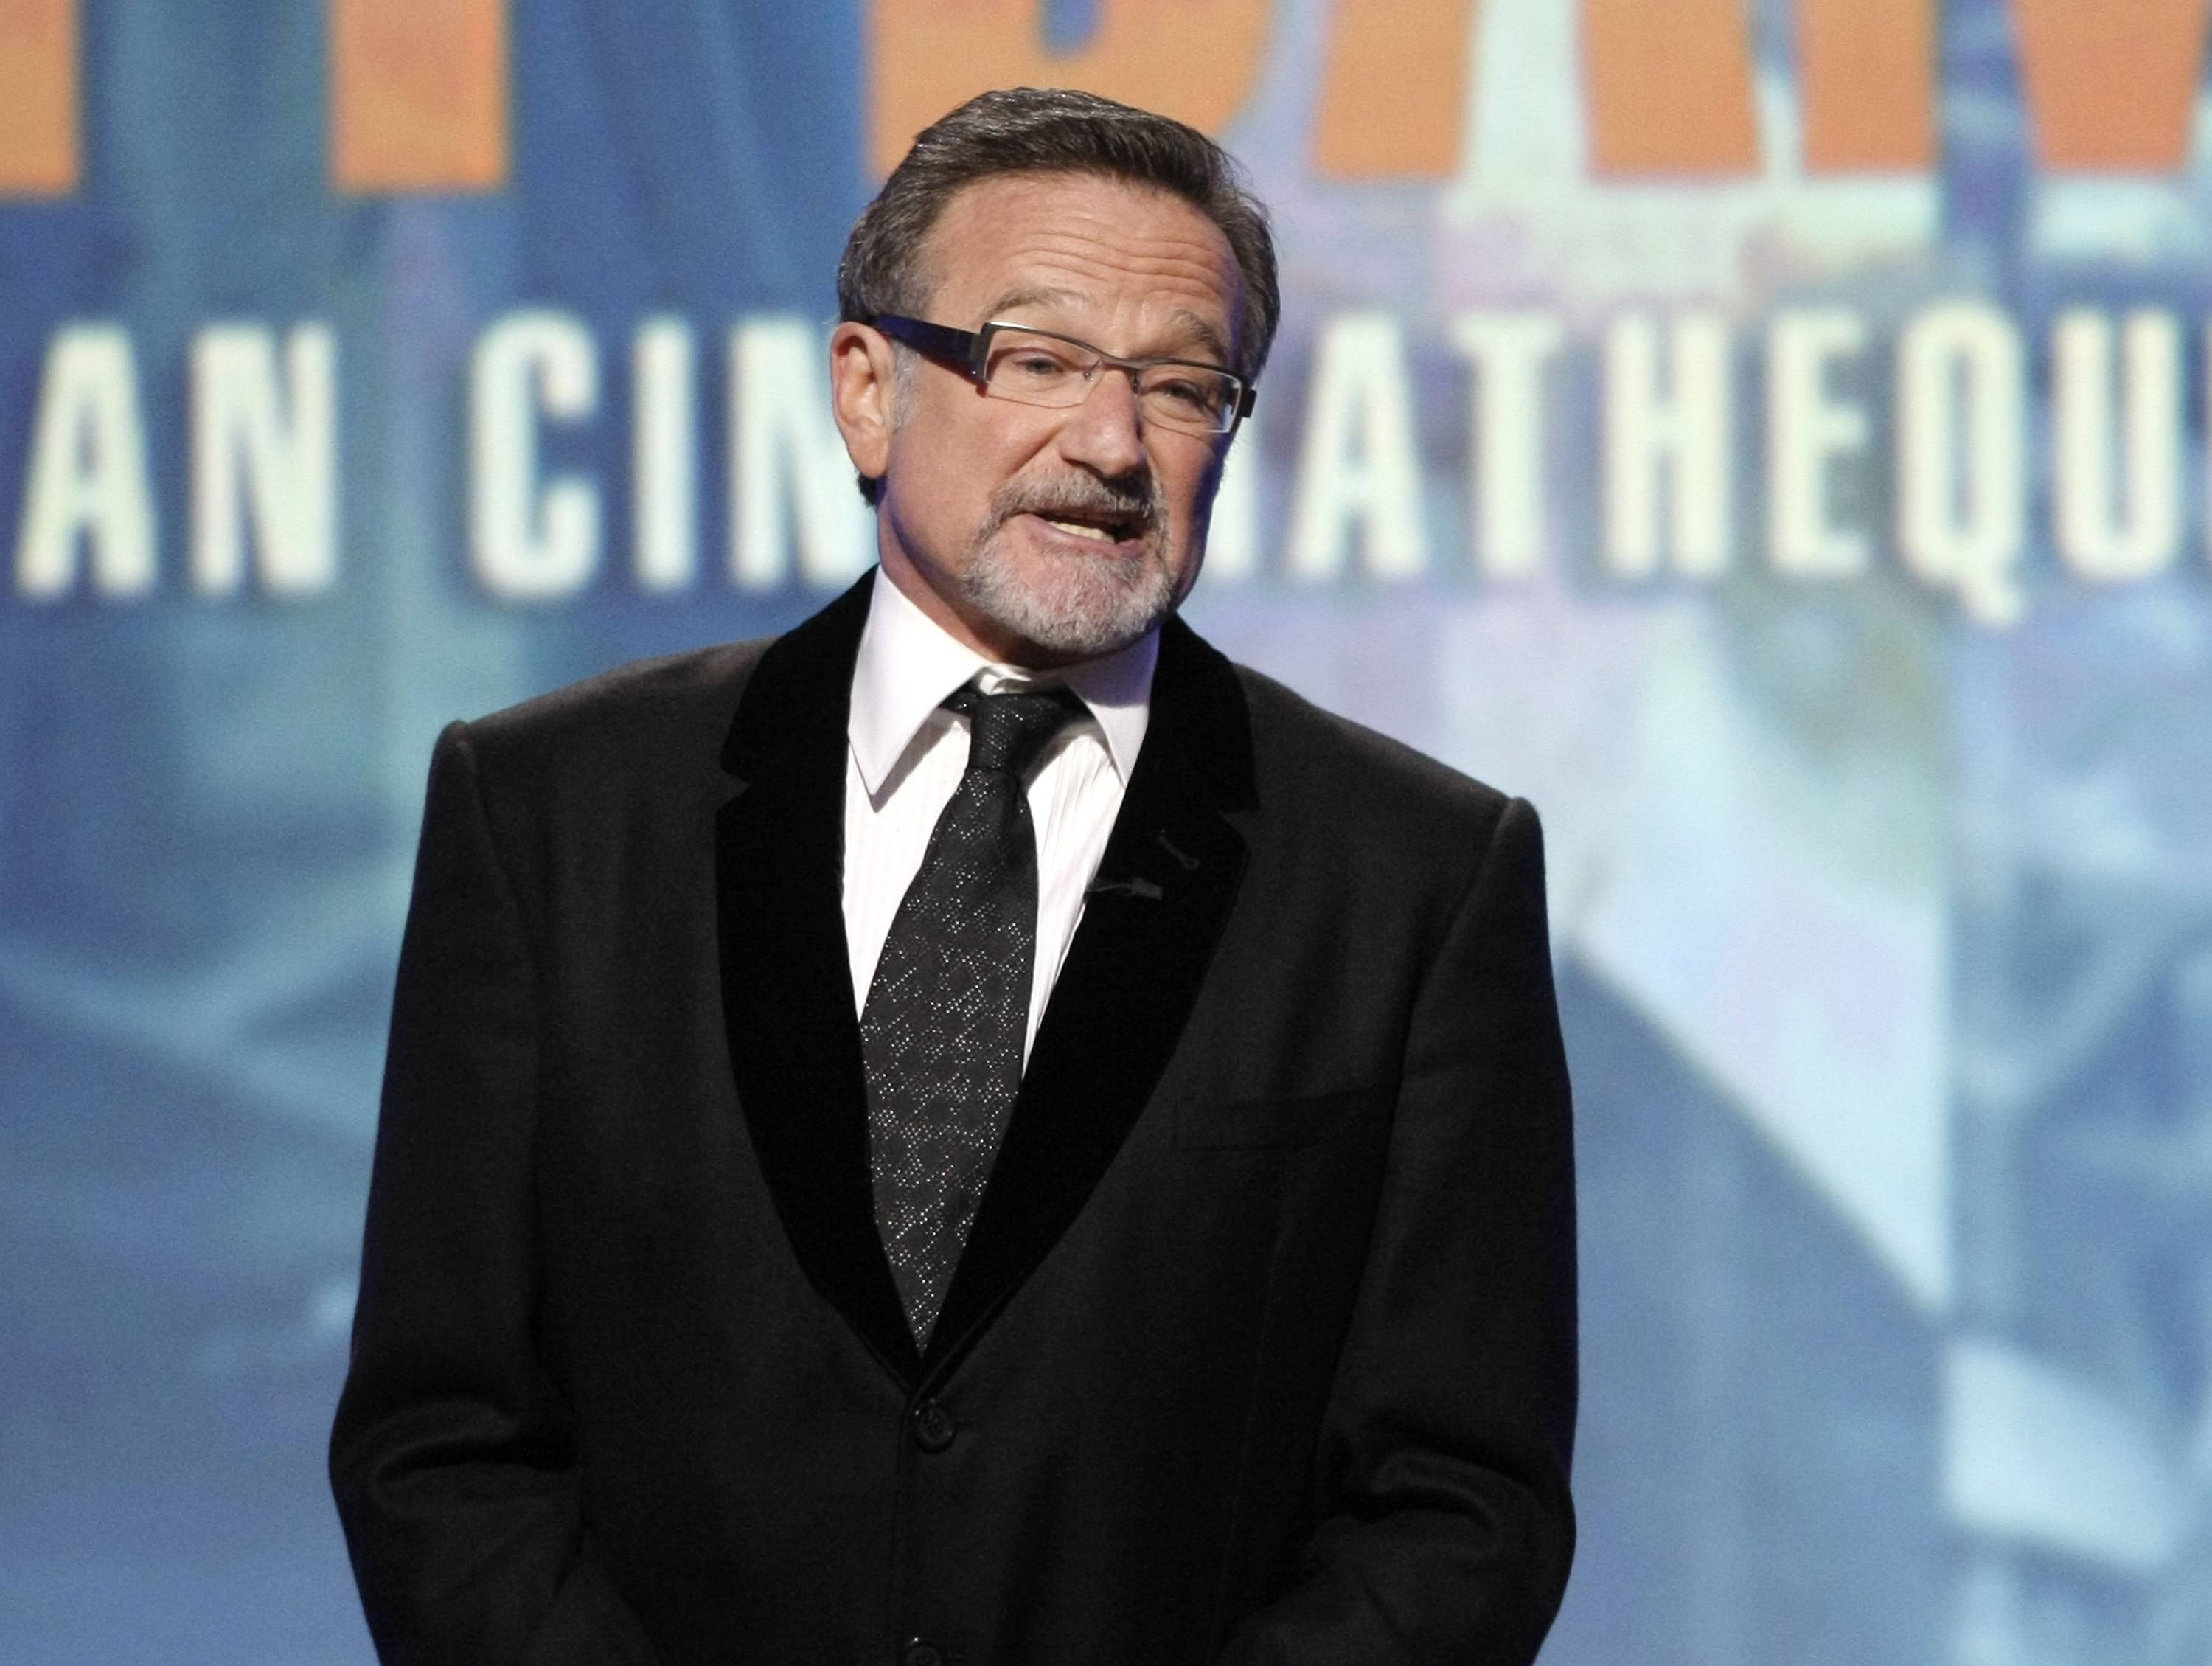 Big question about Robin Williams' death: Why?